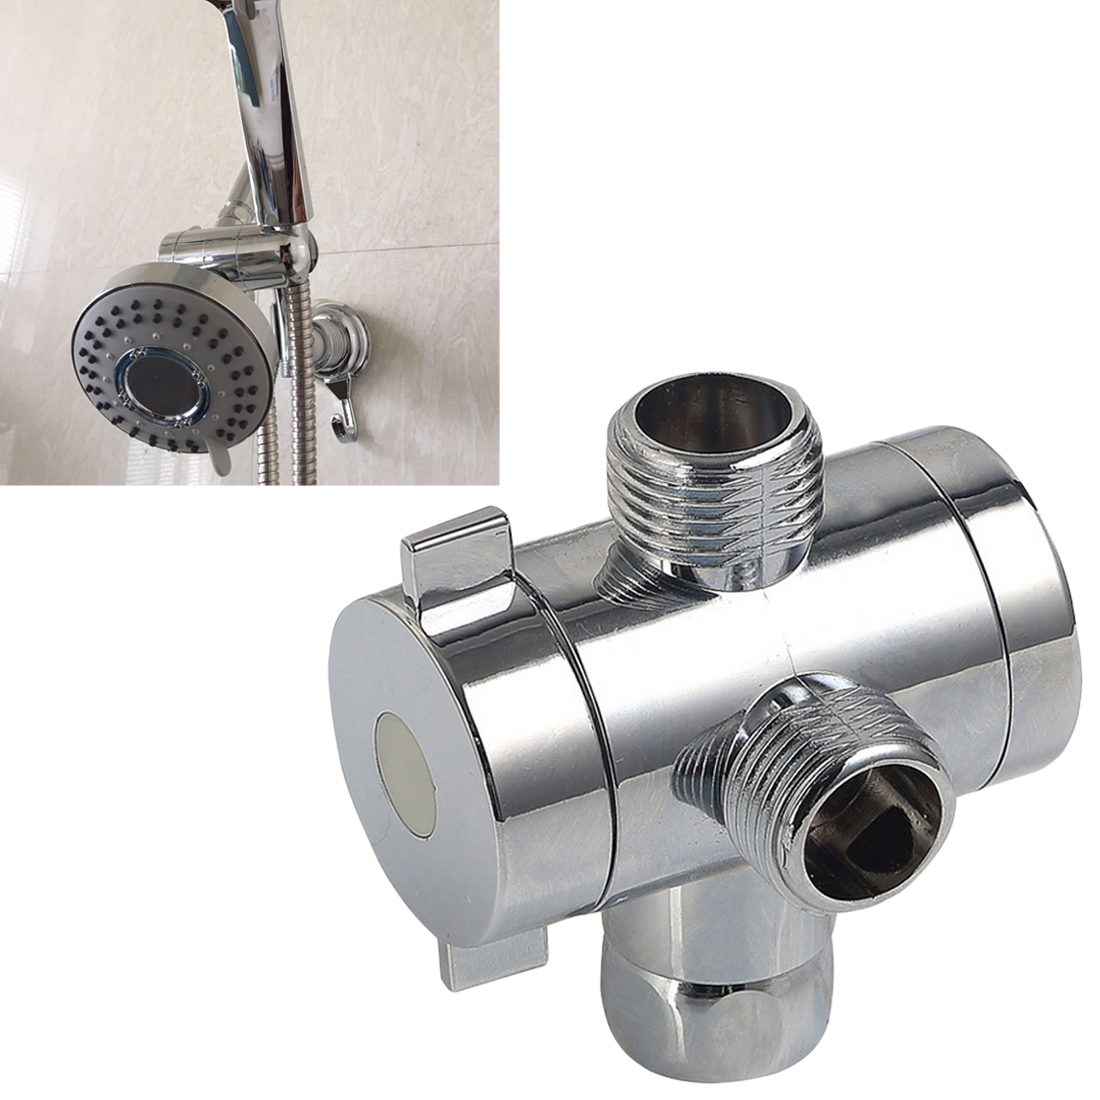 Filling Valves 3 Way Shower Head Diverter Valve -G1/2